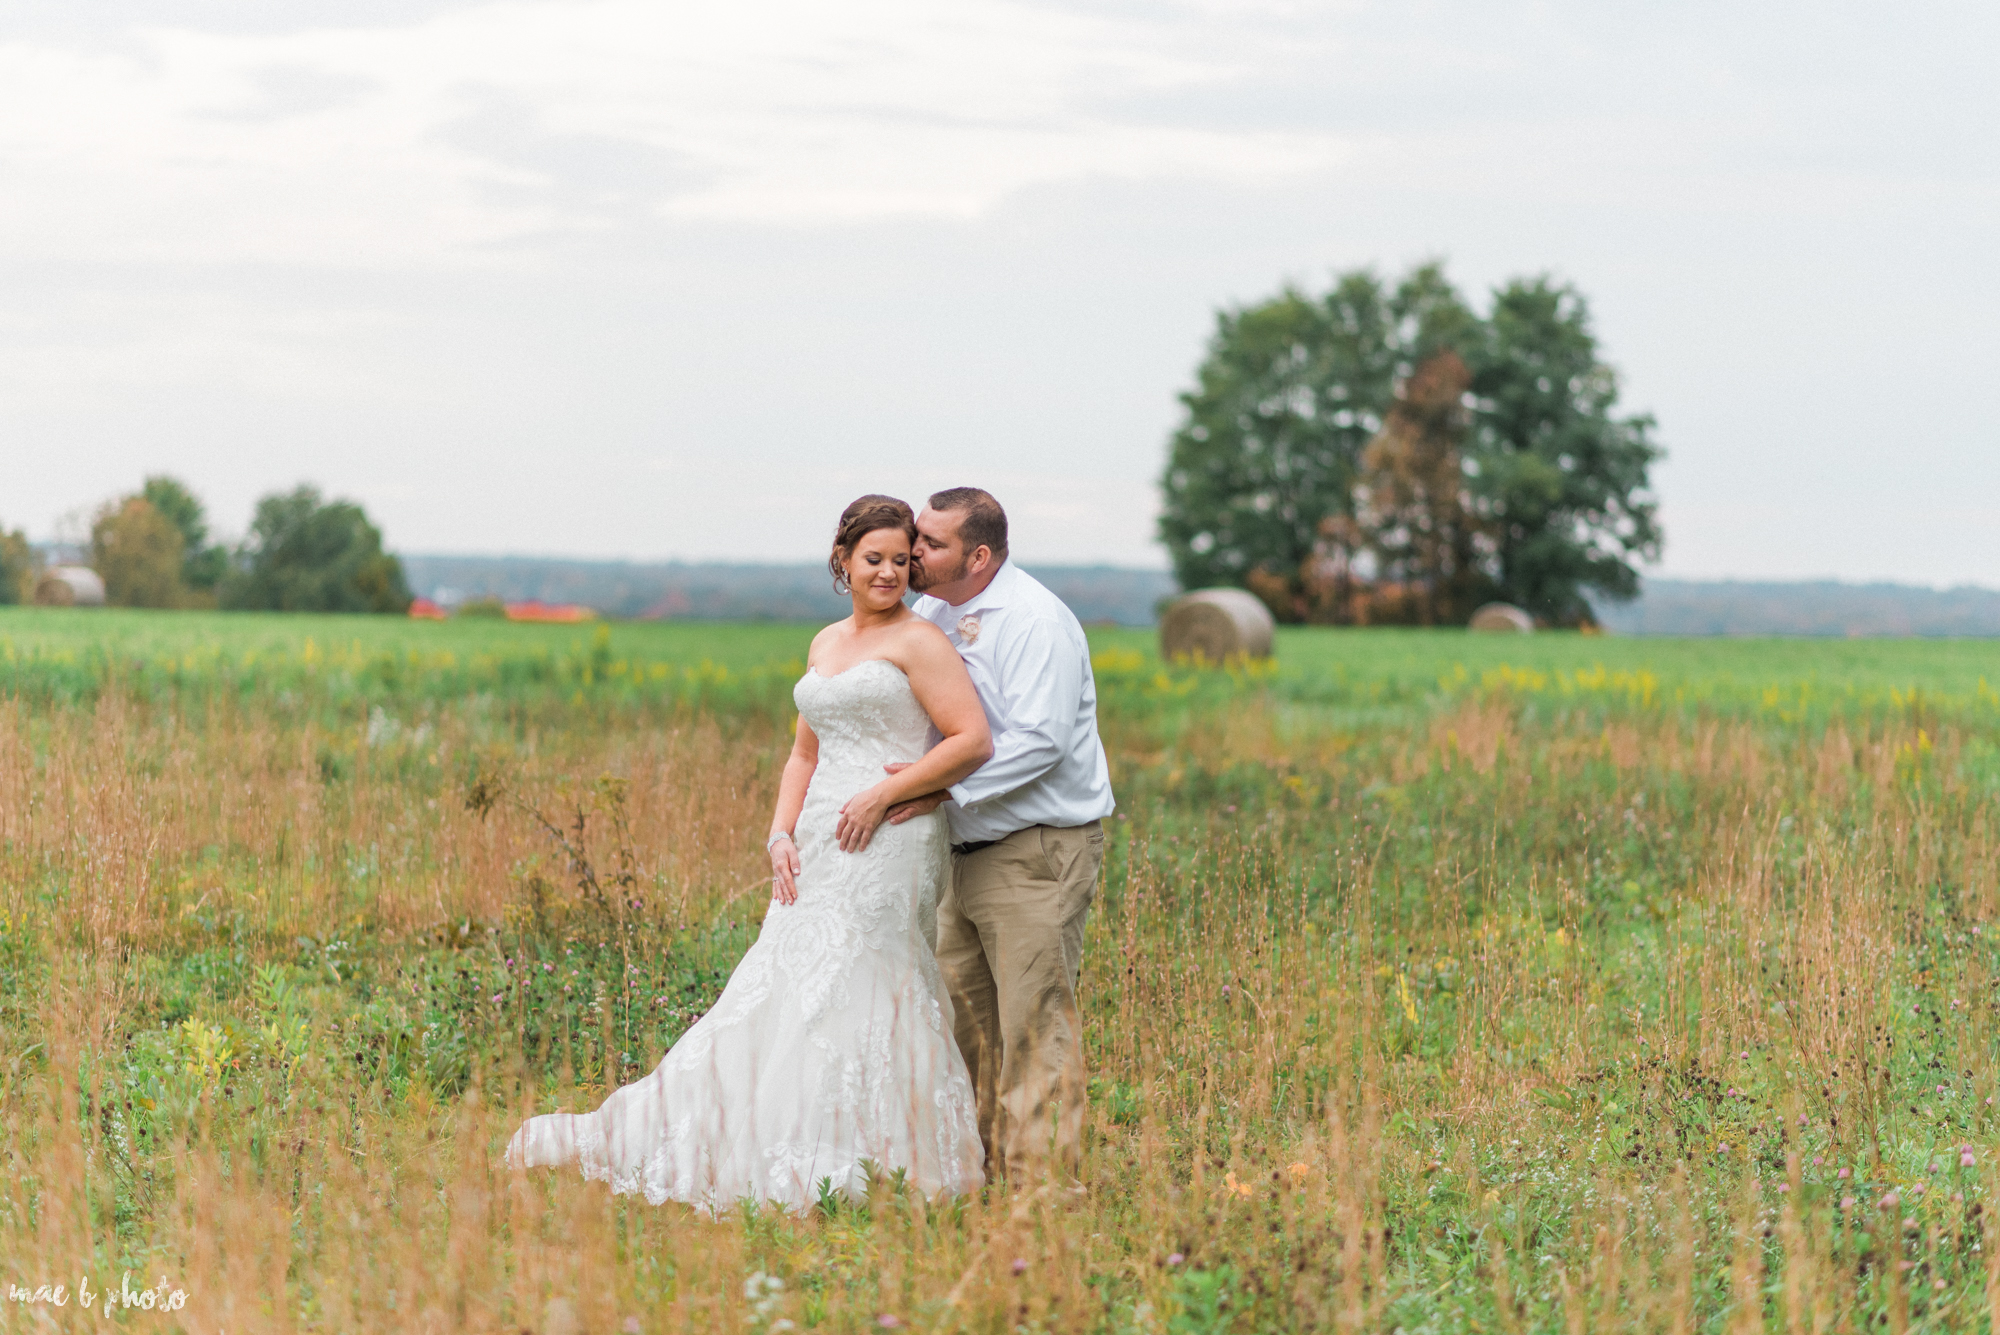 Sarah & Dustin's Intimate Fall Barn Winery Wedding at Hartford Hill Winery in Hartford, Ohio Photographed by Mae B Photo-5.jpg